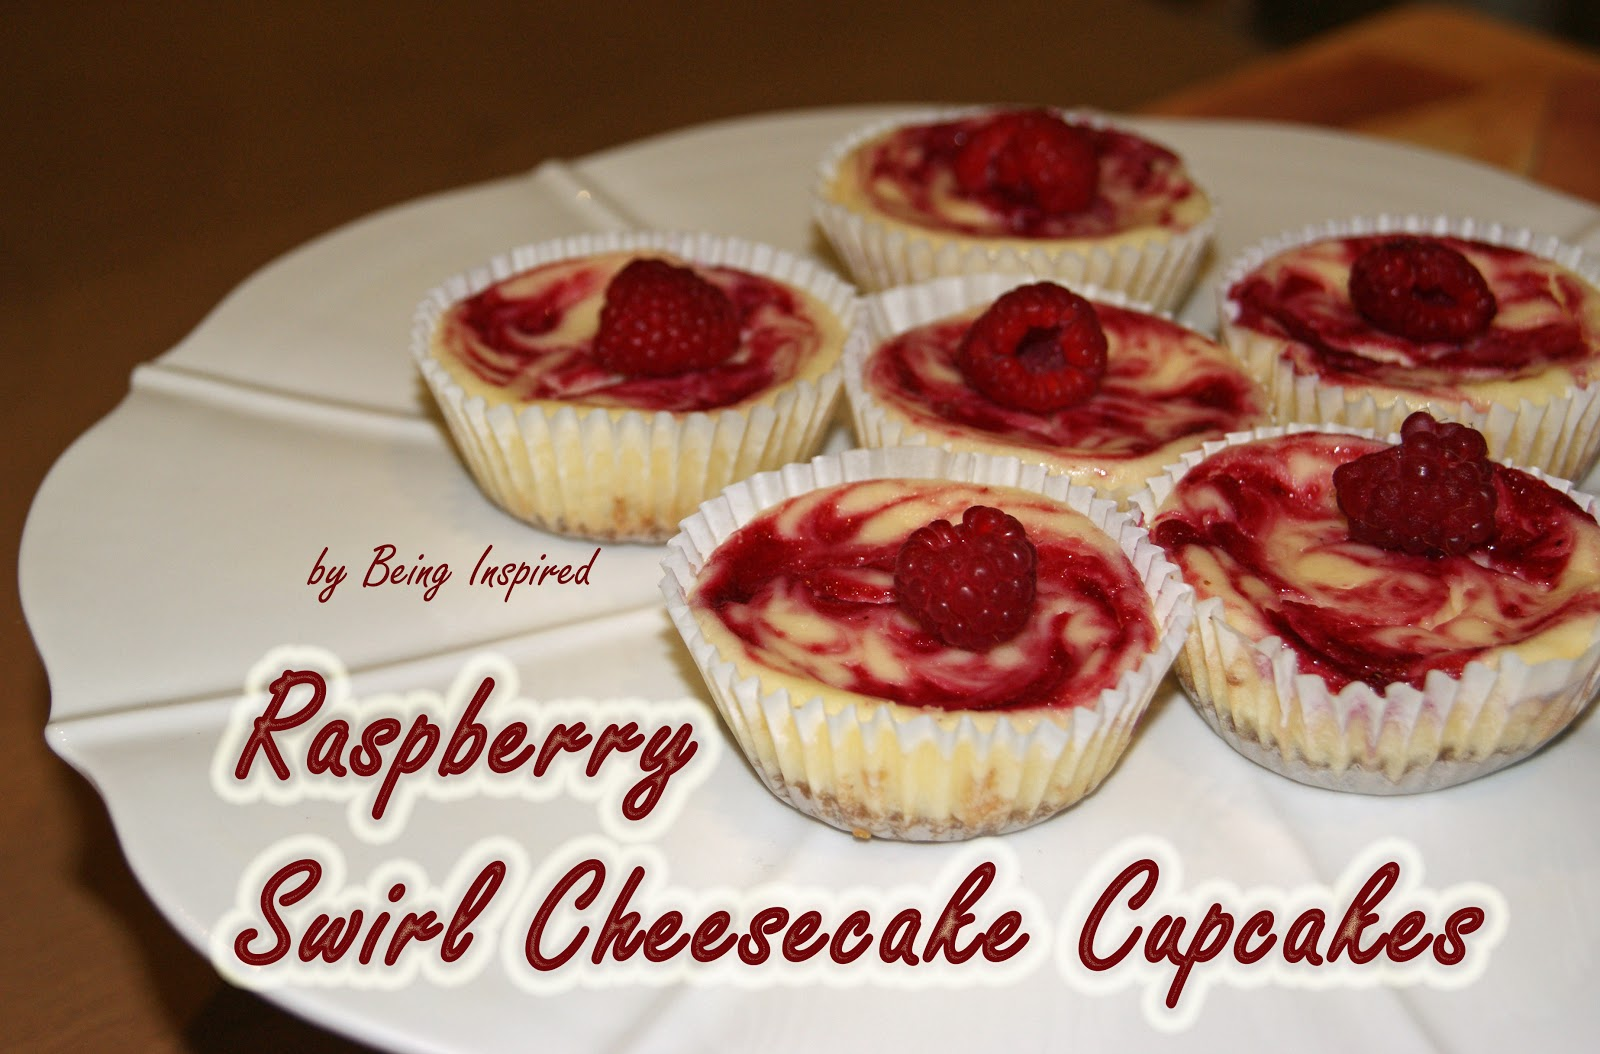 Being Inspired: Day 28 - Raspberry Swirl Cheesecake Cupcakes